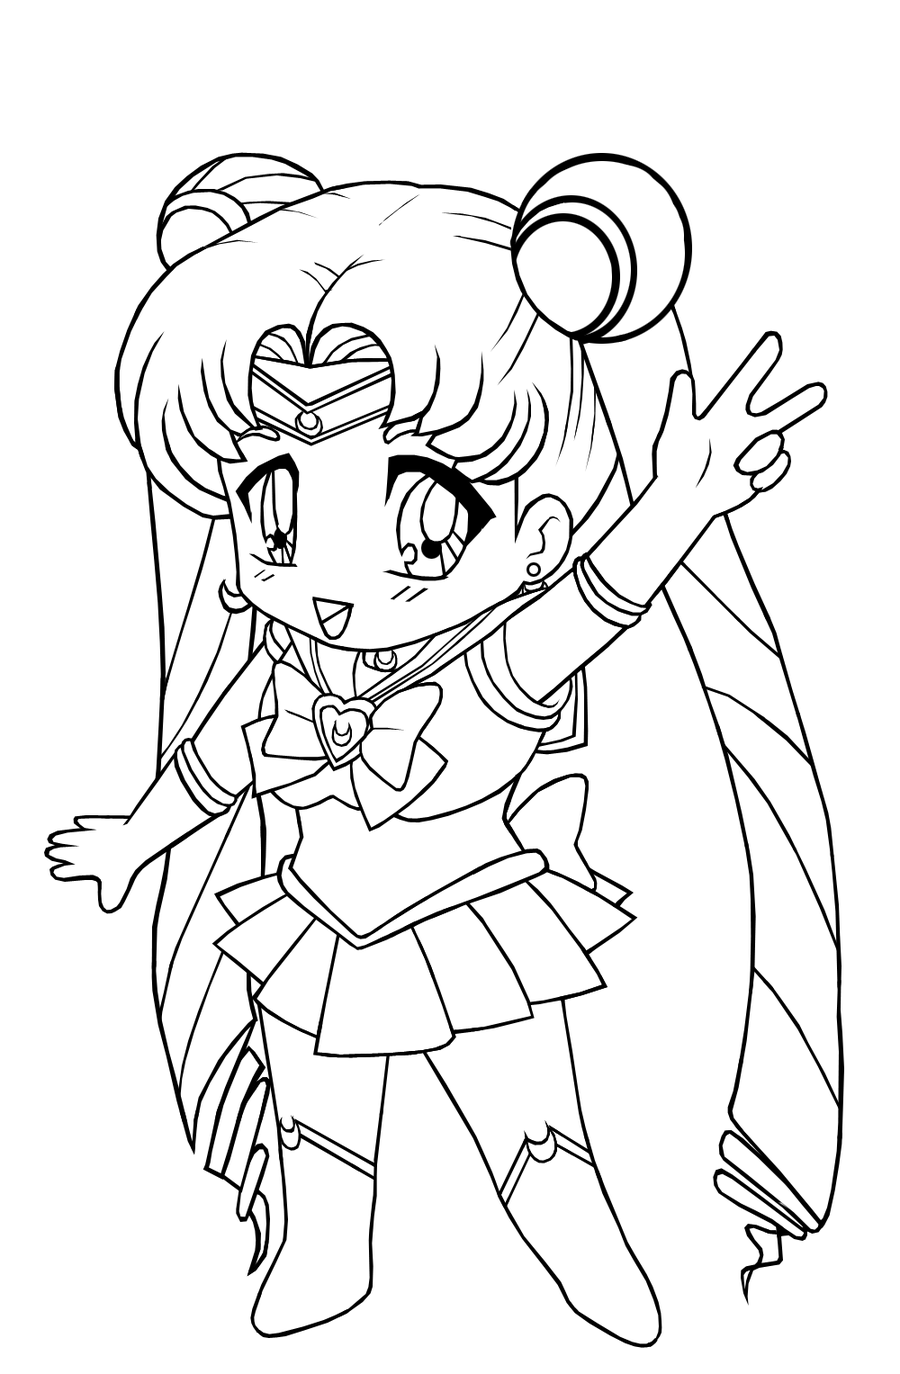 sailor moon coloring pages kids n funcom 66 coloring pages of sailor moon sailor coloring moon pages